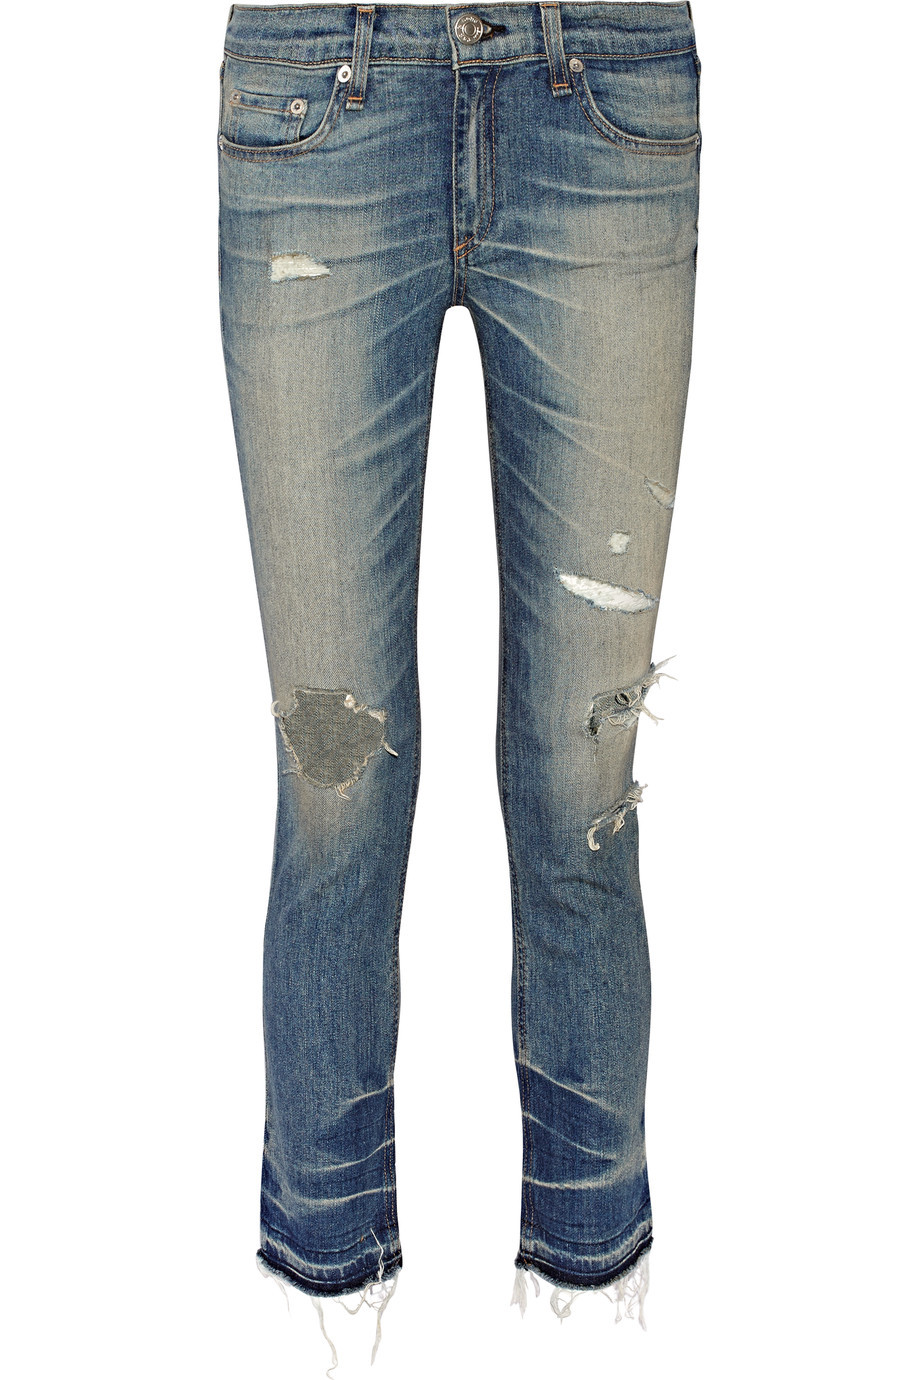 Distressed Mid Rise Skinny Jeans Mid Denim - style: skinny leg; length: standard; pattern: plain; pocket detail: traditional 5 pocket; waist: mid/regular rise; predominant colour: denim; occasions: casual; fibres: cotton - stretch; jeans detail: whiskering, shading down centre of thigh, rips; texture group: denim; pattern type: fabric; season: s/s 2016; wardrobe: basic